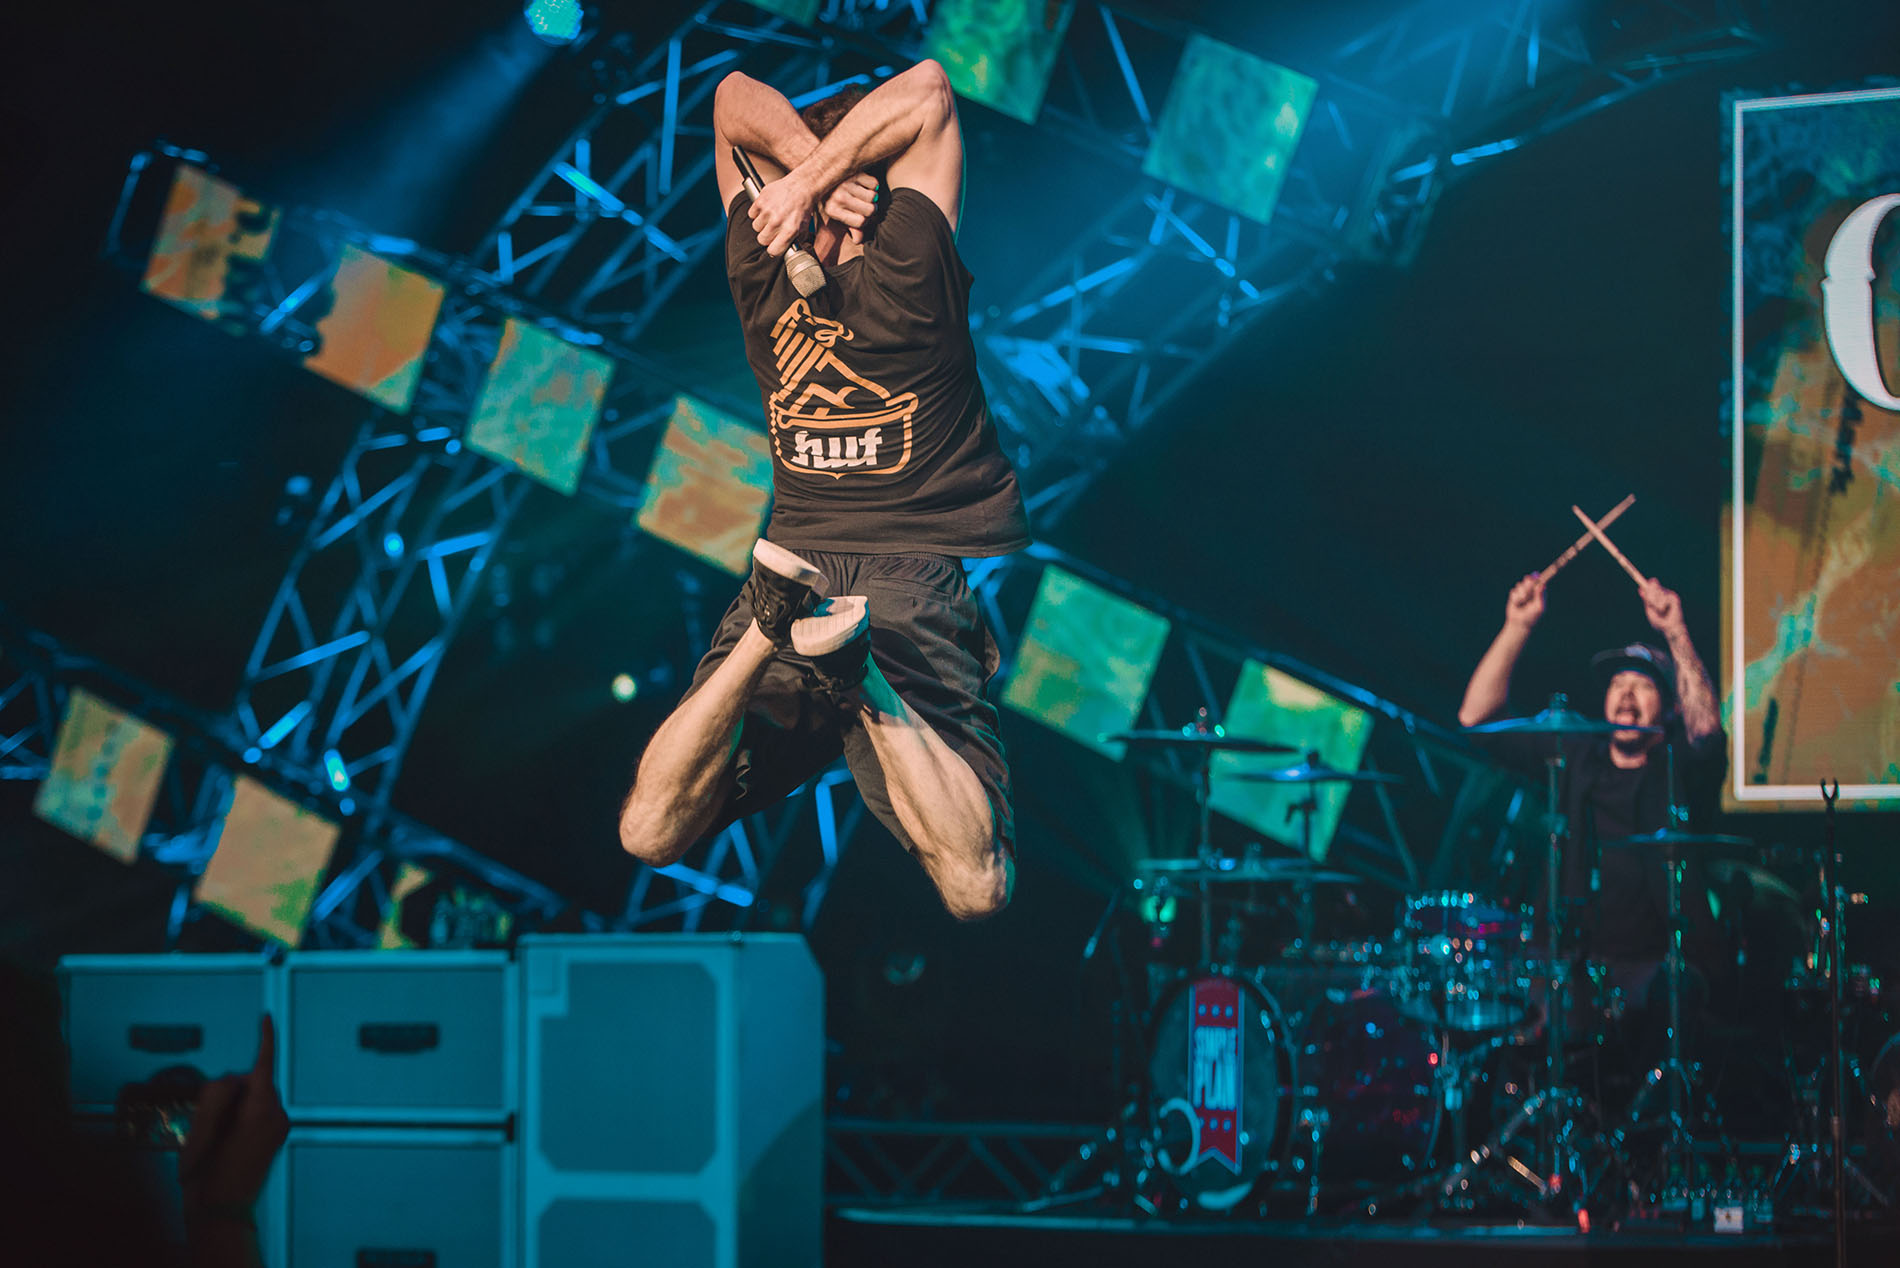 simple plan chuck disney garden rocks drummer jumping band concert rock photo photography image